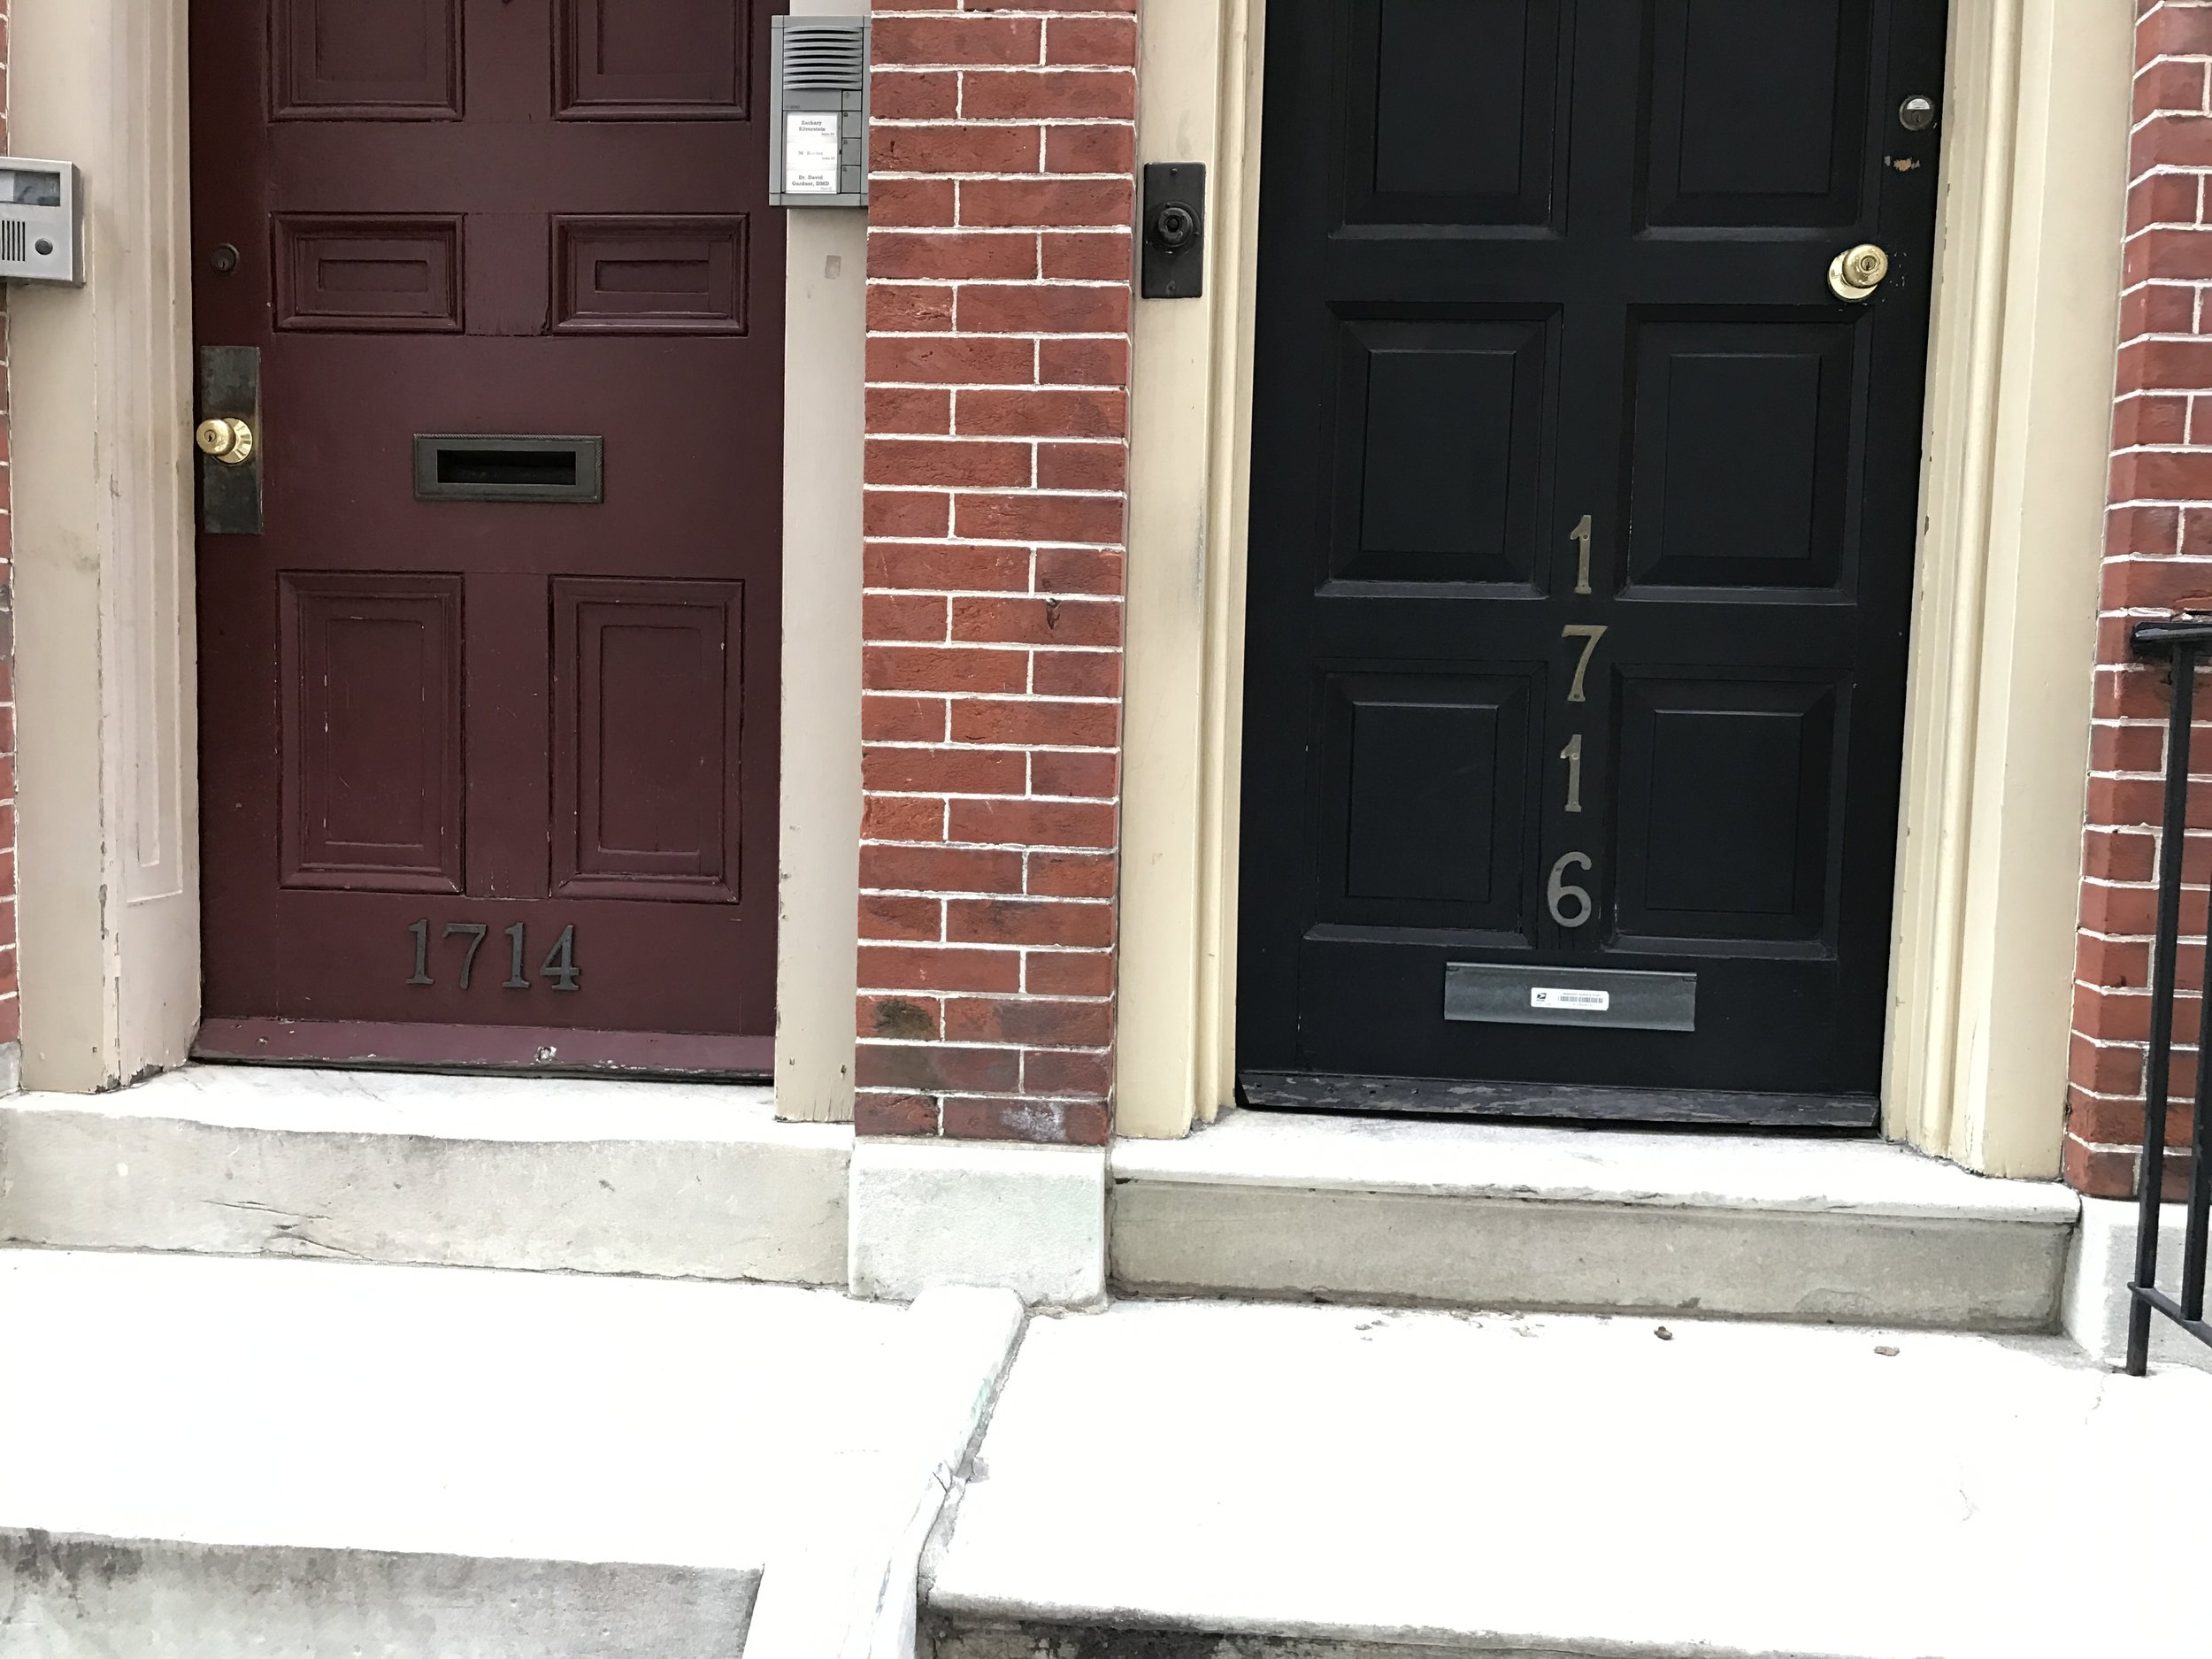 Two doors with their numbered street addresses in plain view